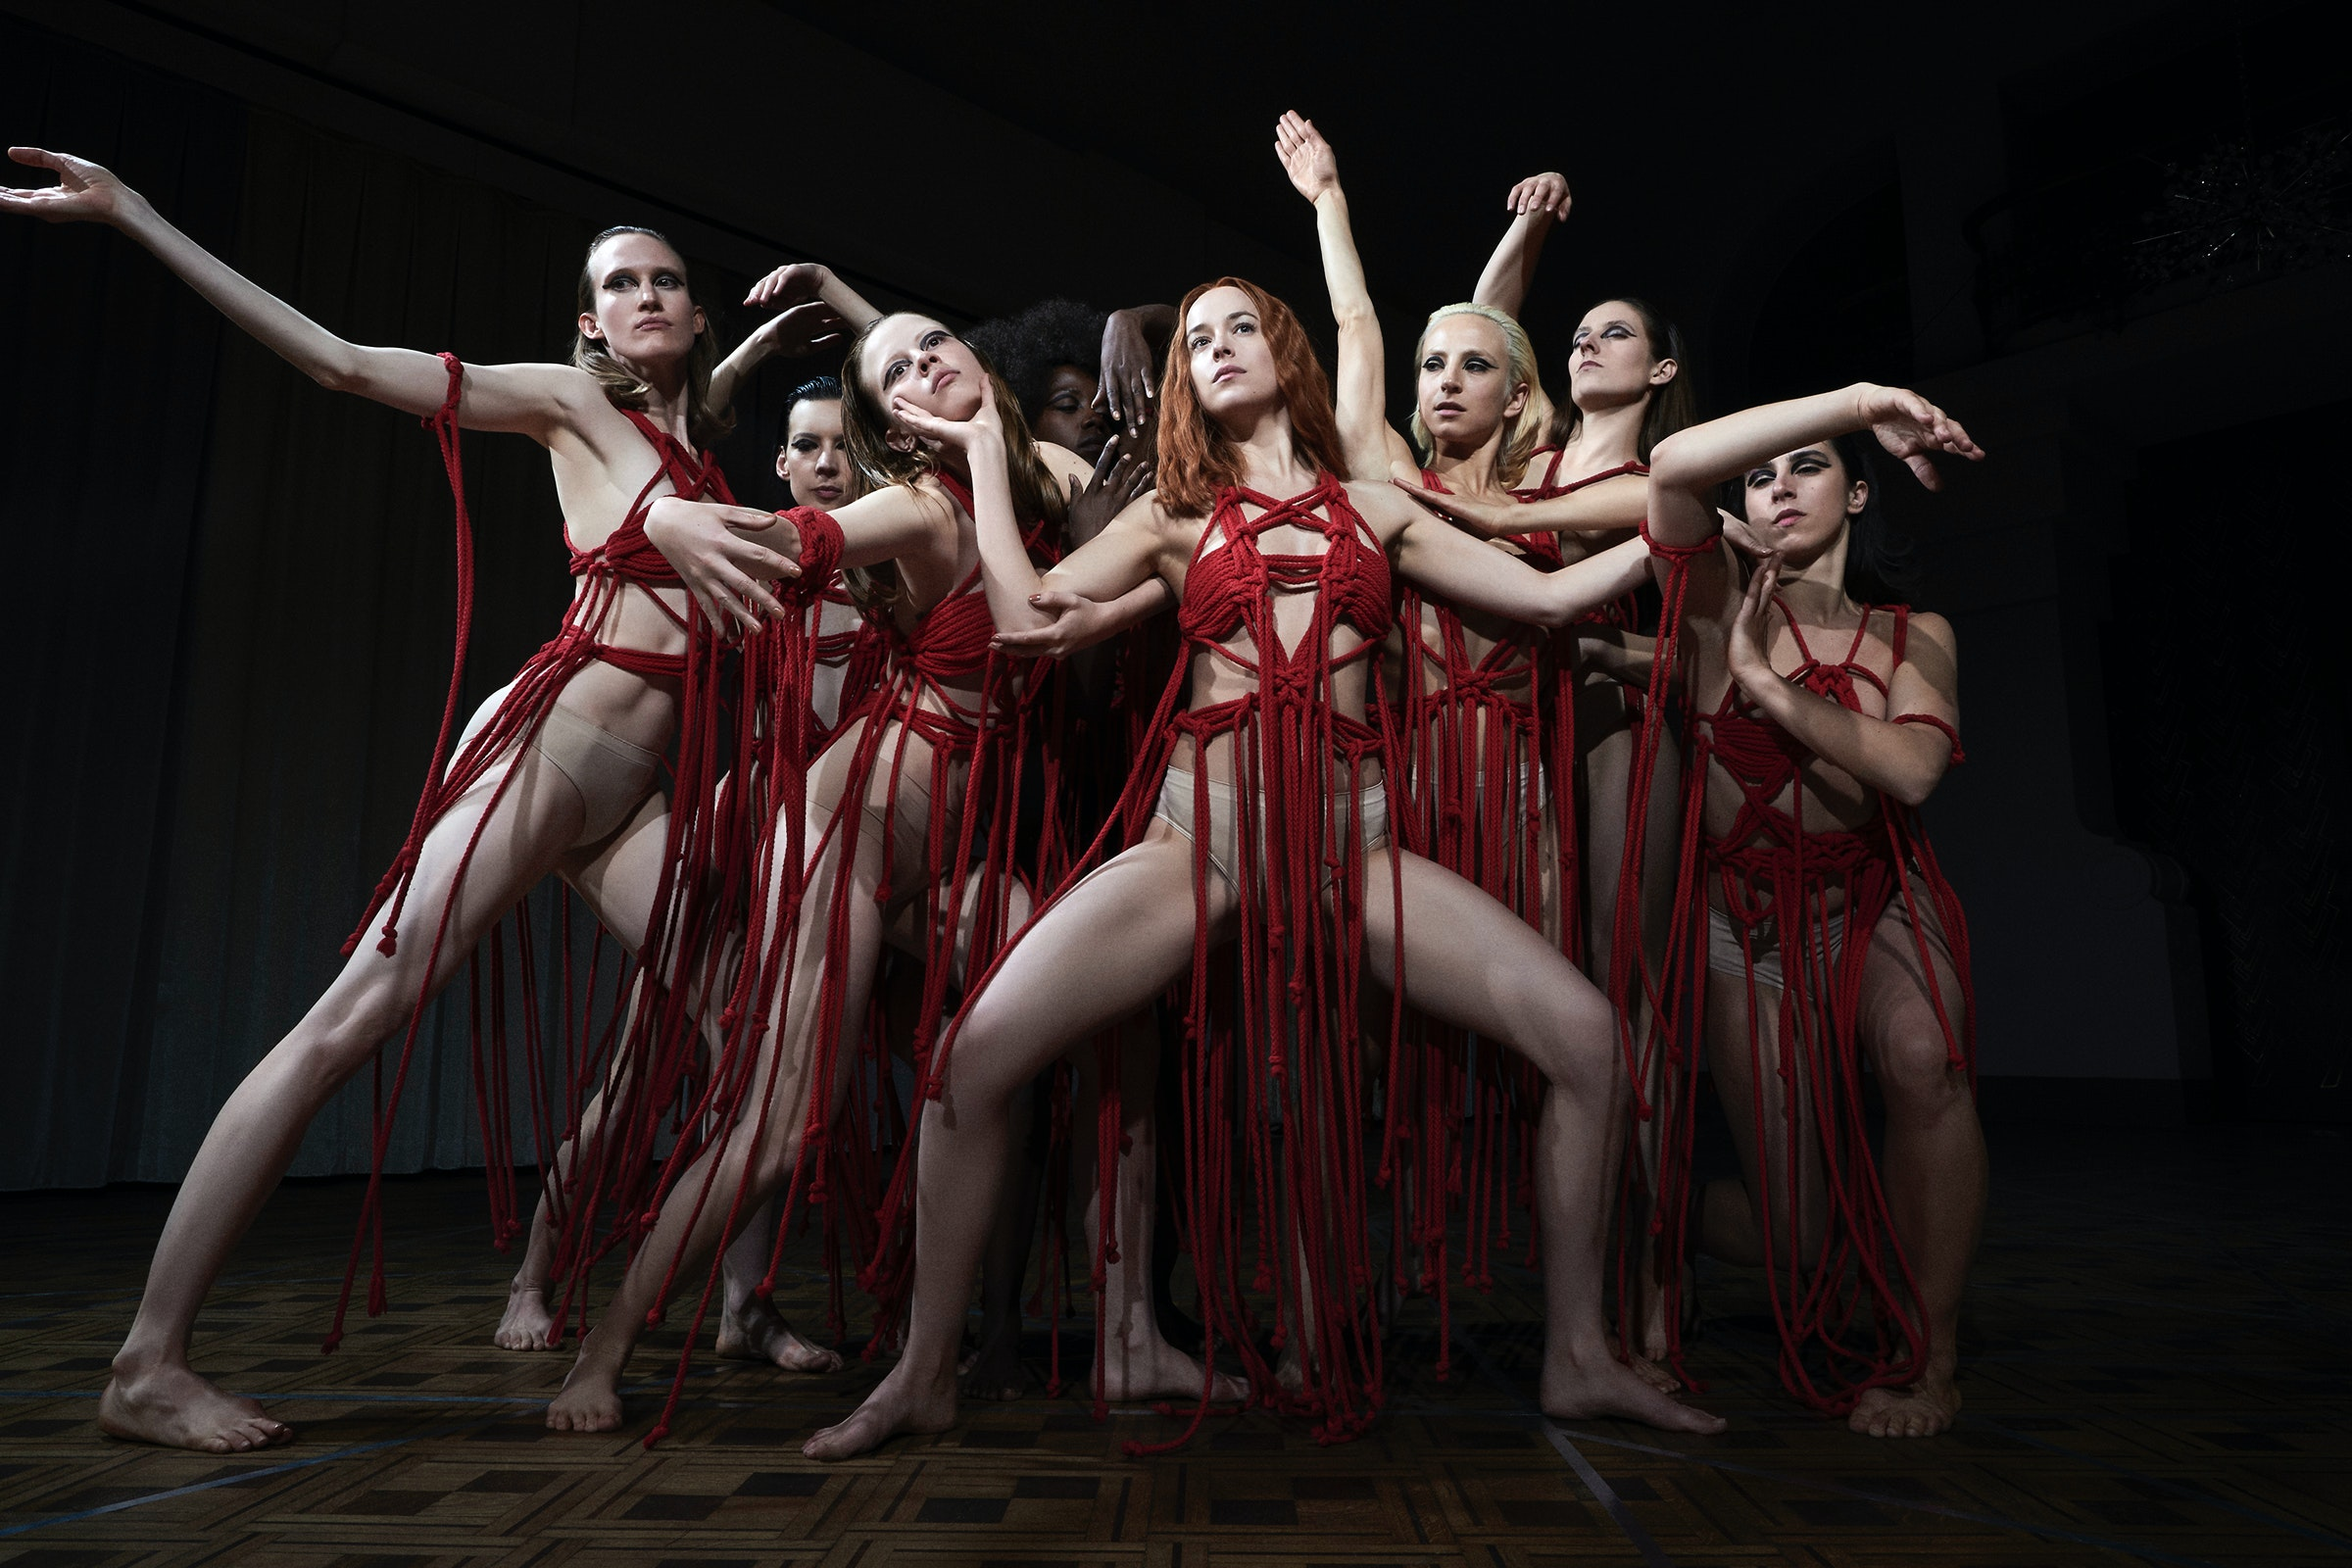 Dancers wearing in red in formation